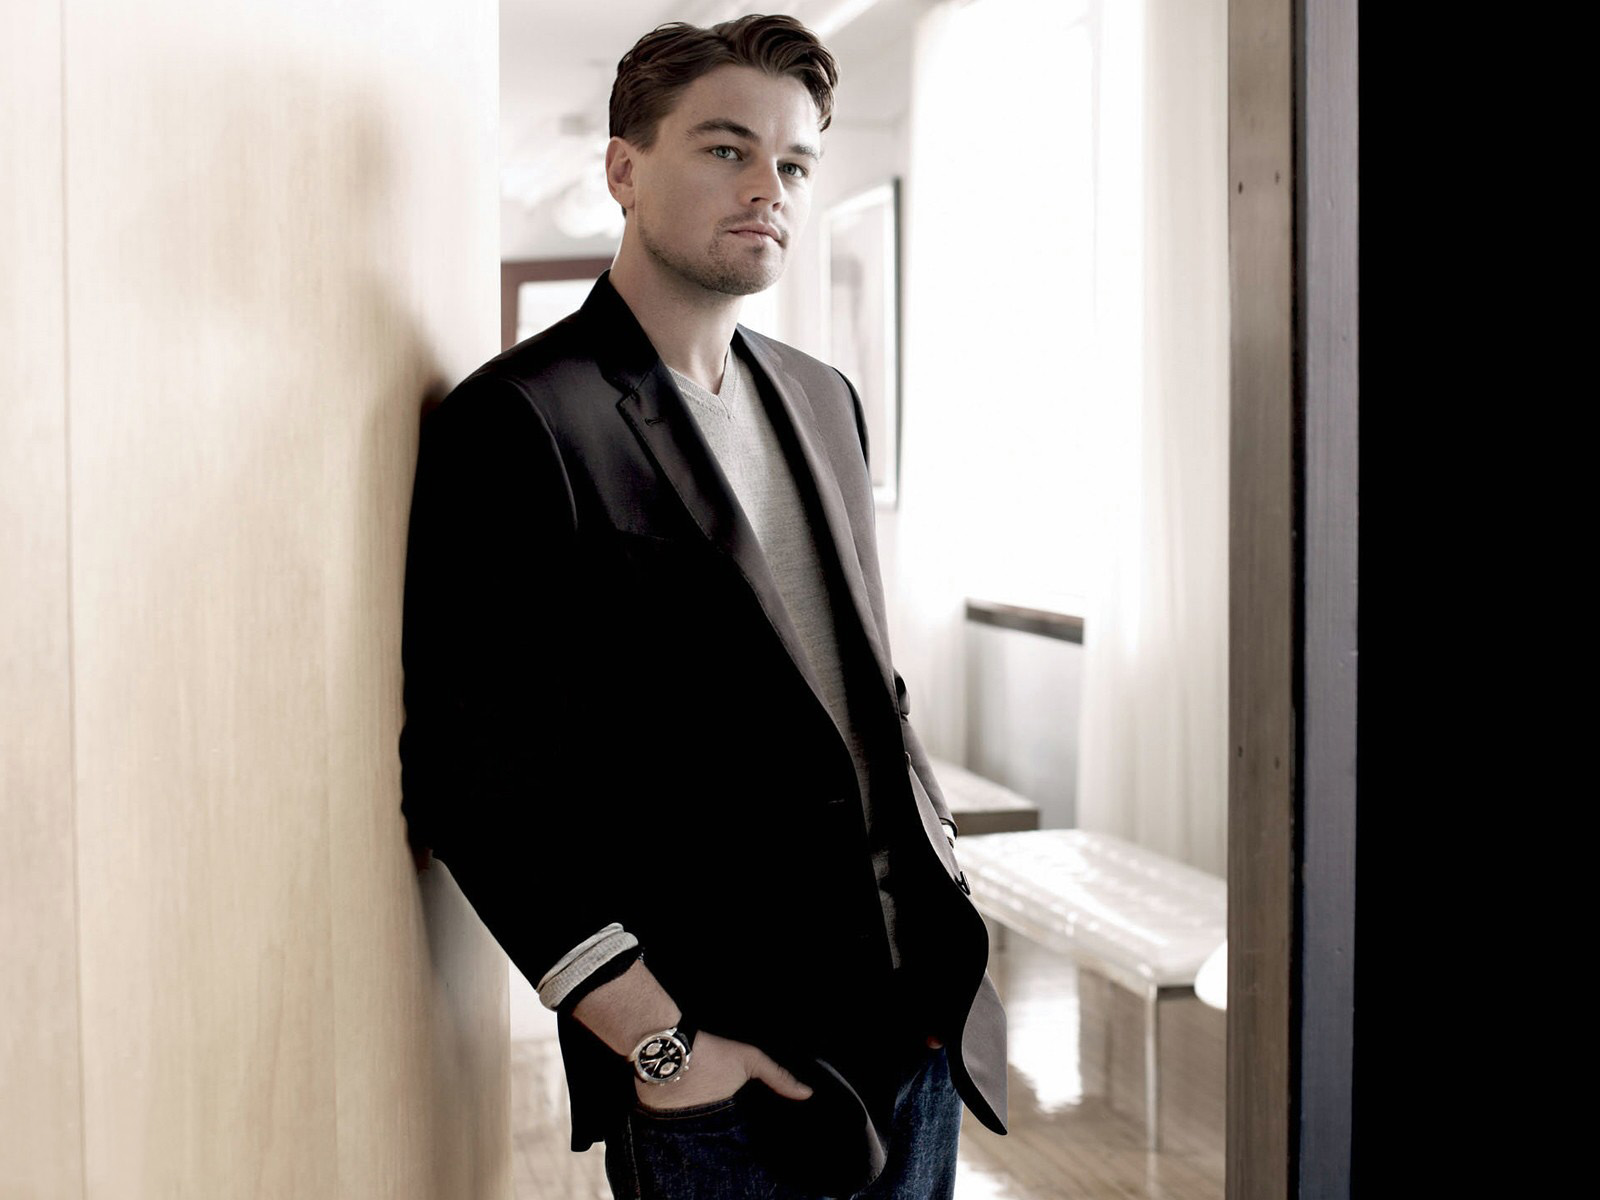 leonardo dicaprio 2014 - wallpaper, high definition, high quality